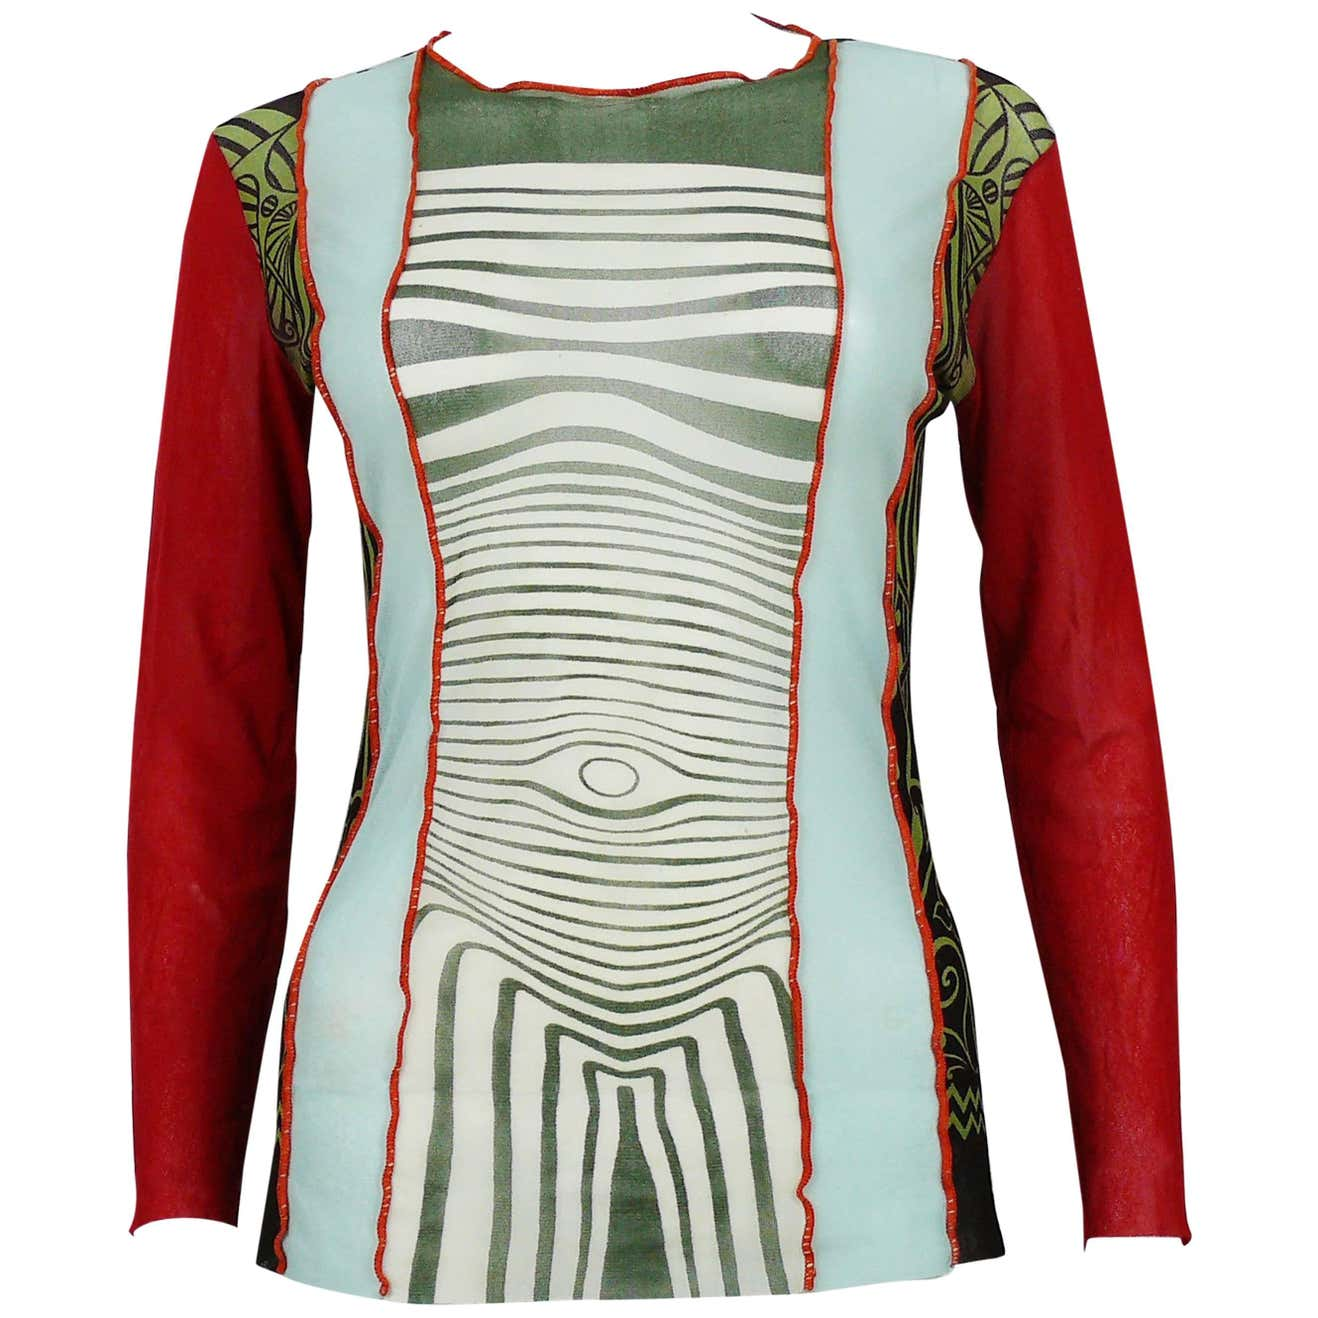 Vintage 1996 Cyberbaba Body Map Optical Illusion Top Size L by Jean Paul Gaultier, available on 1stdibs.com for $296.78 Kendall Jenner Top Exact Product